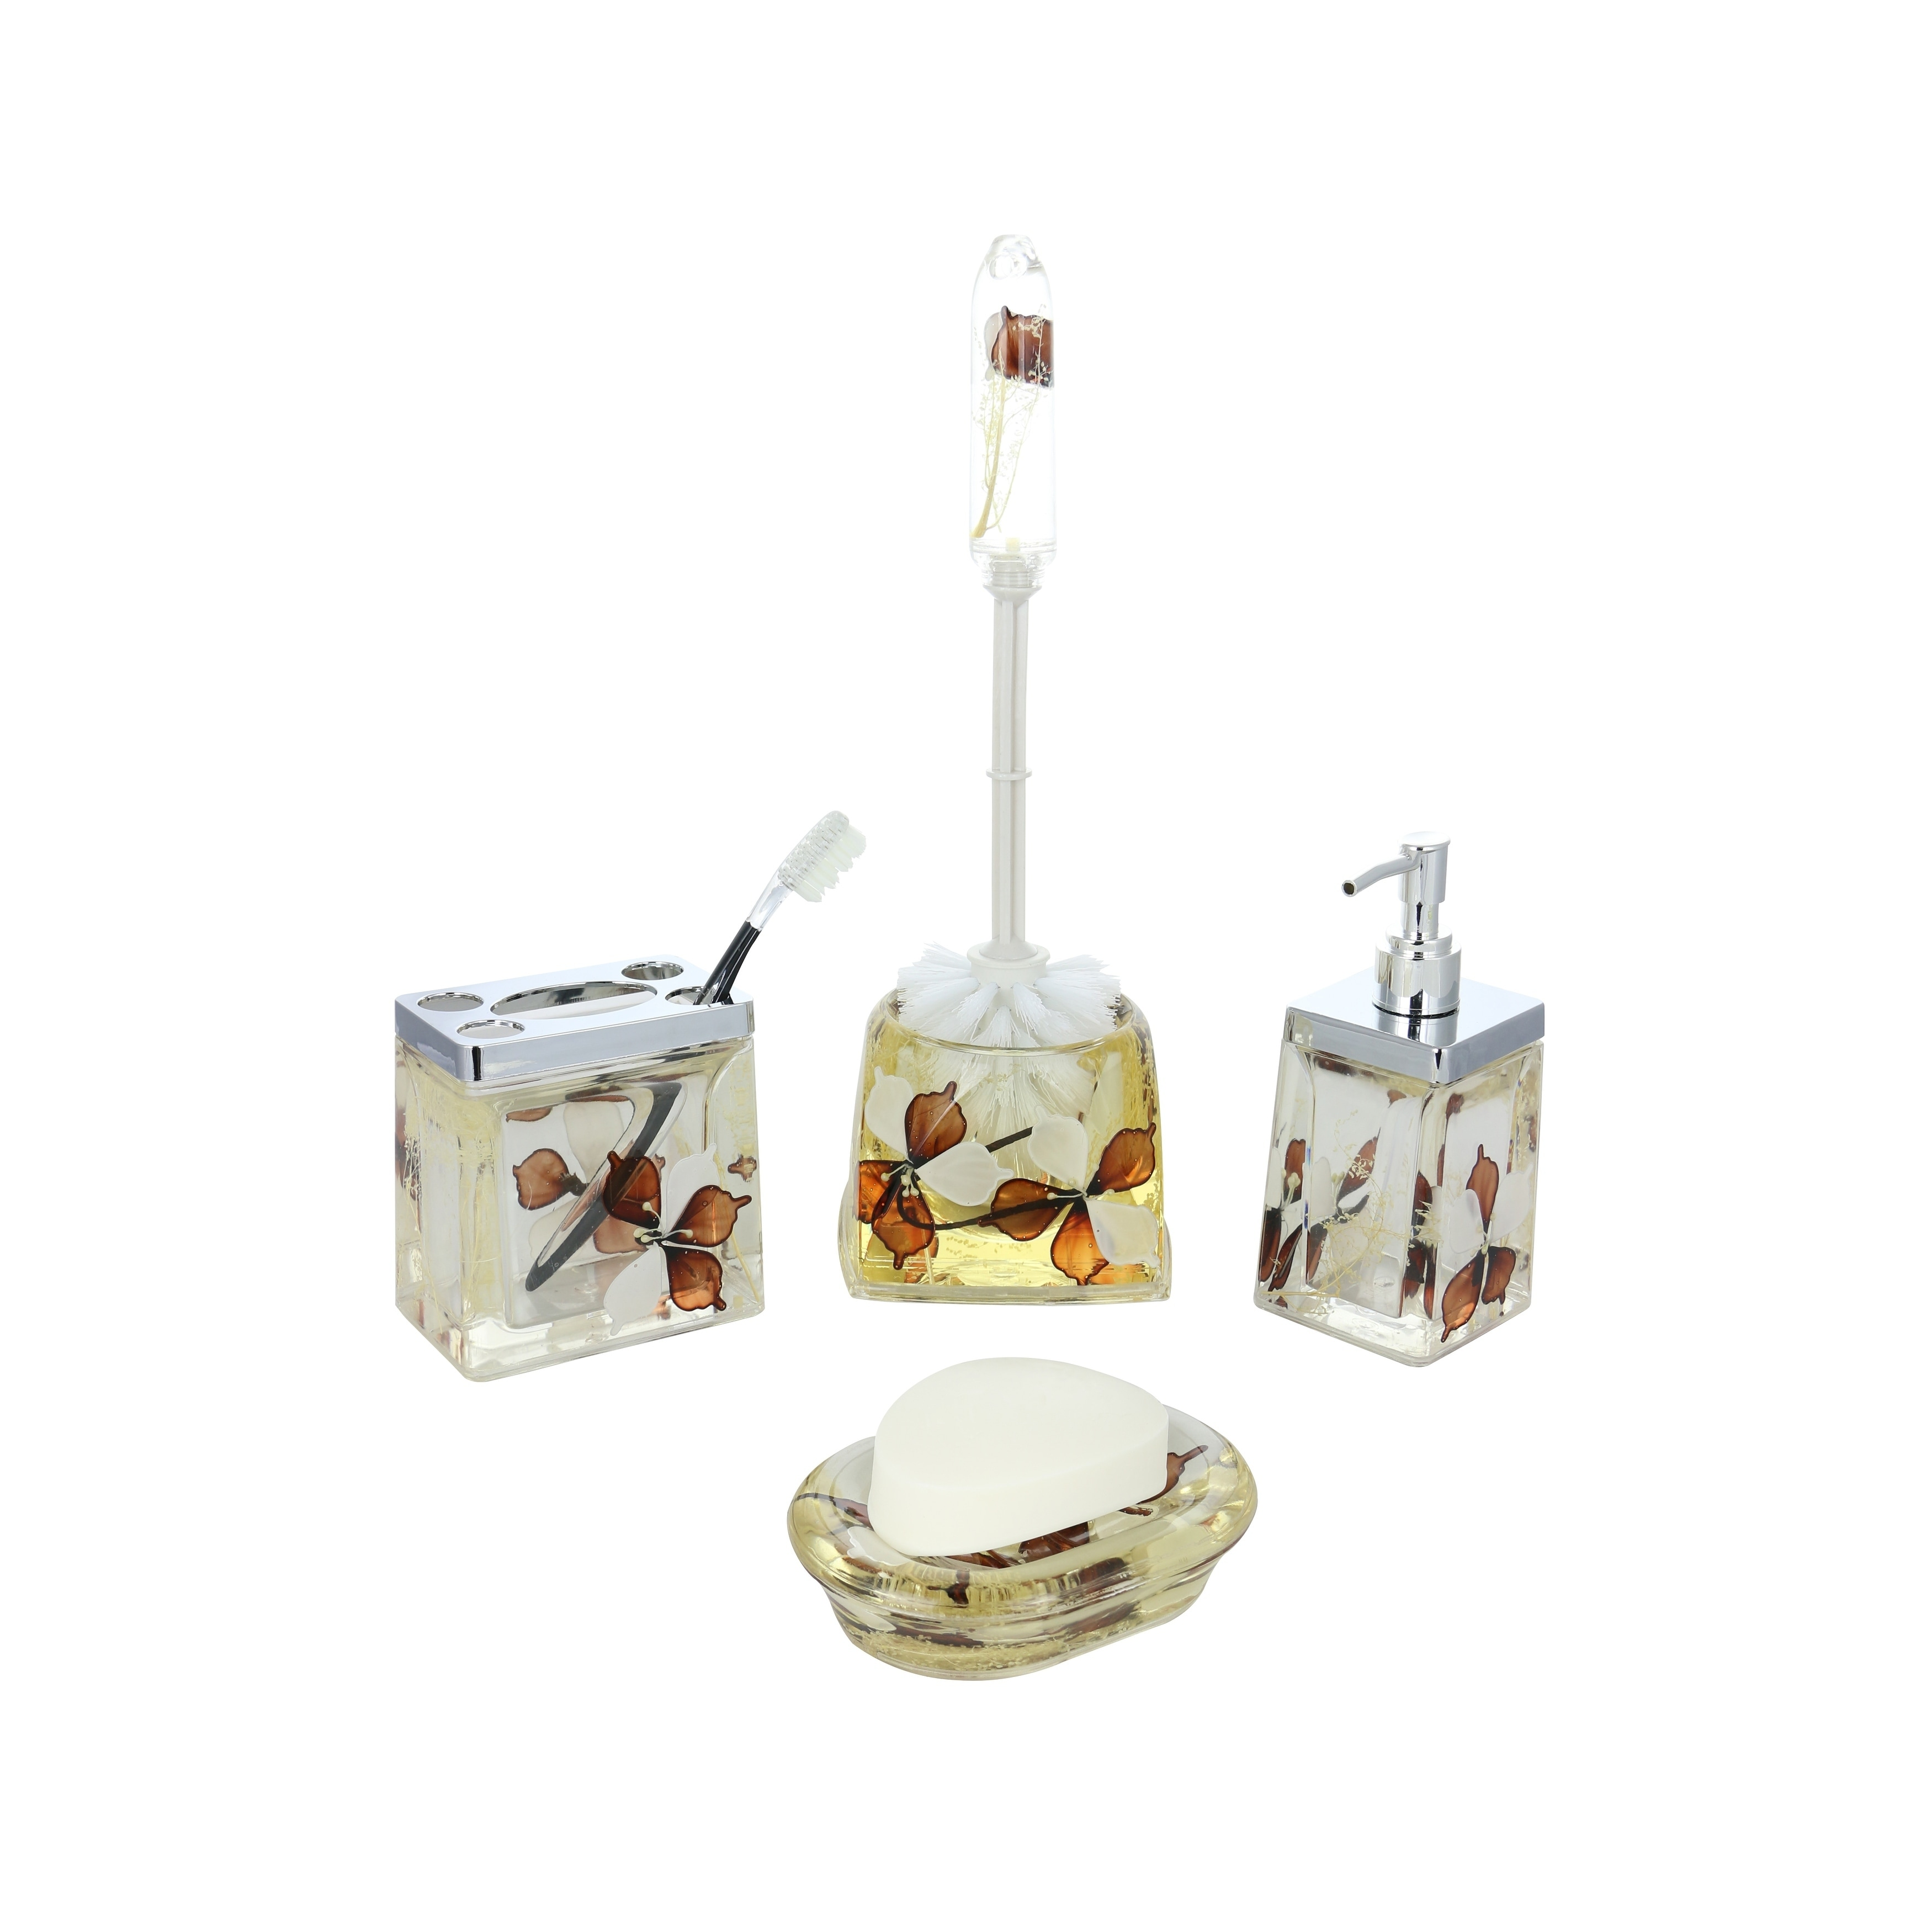 Bathroom Dispenser Set 5 Piece Bathroom Set Brown White Flowers Includes Toothbrush Holder Toilet Brush Scrubber Soap Dispenser